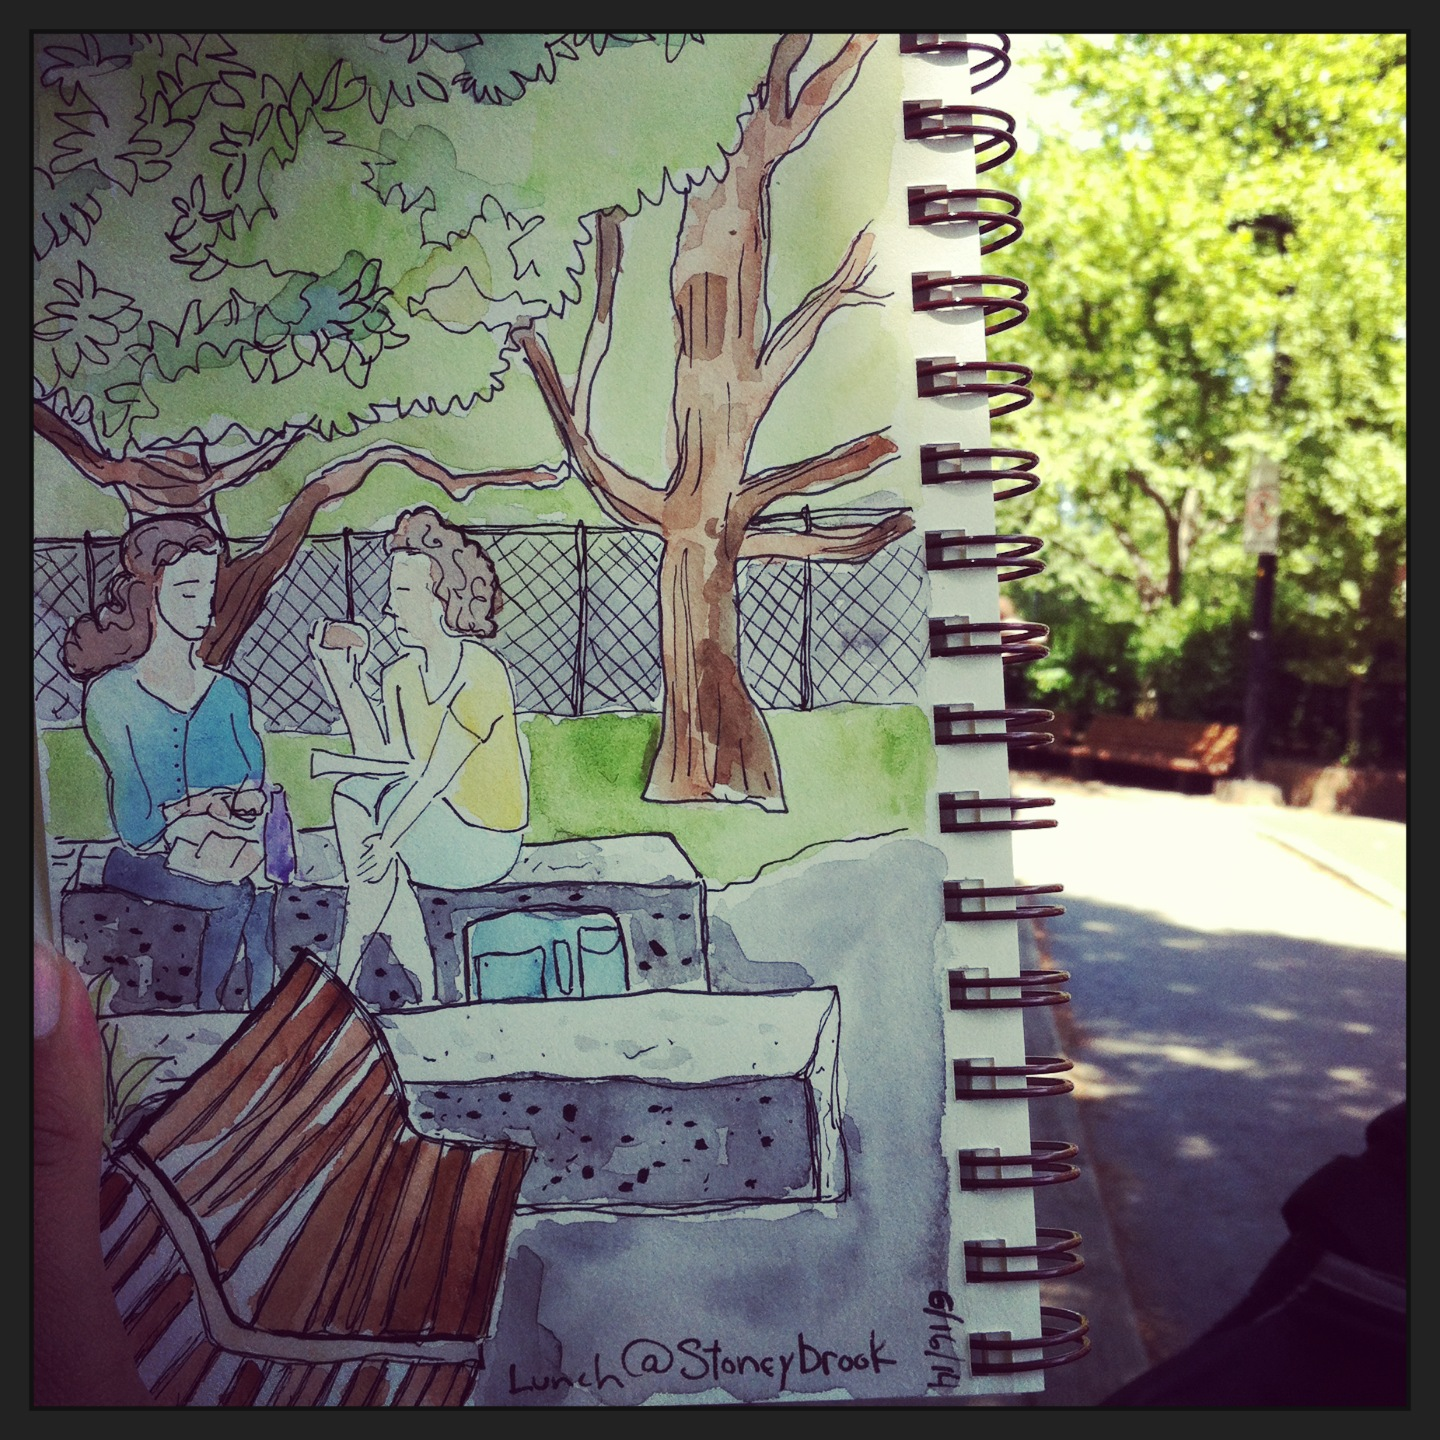 two strangers eating lunch and talking while I sketched them before I picked up my kids from school.